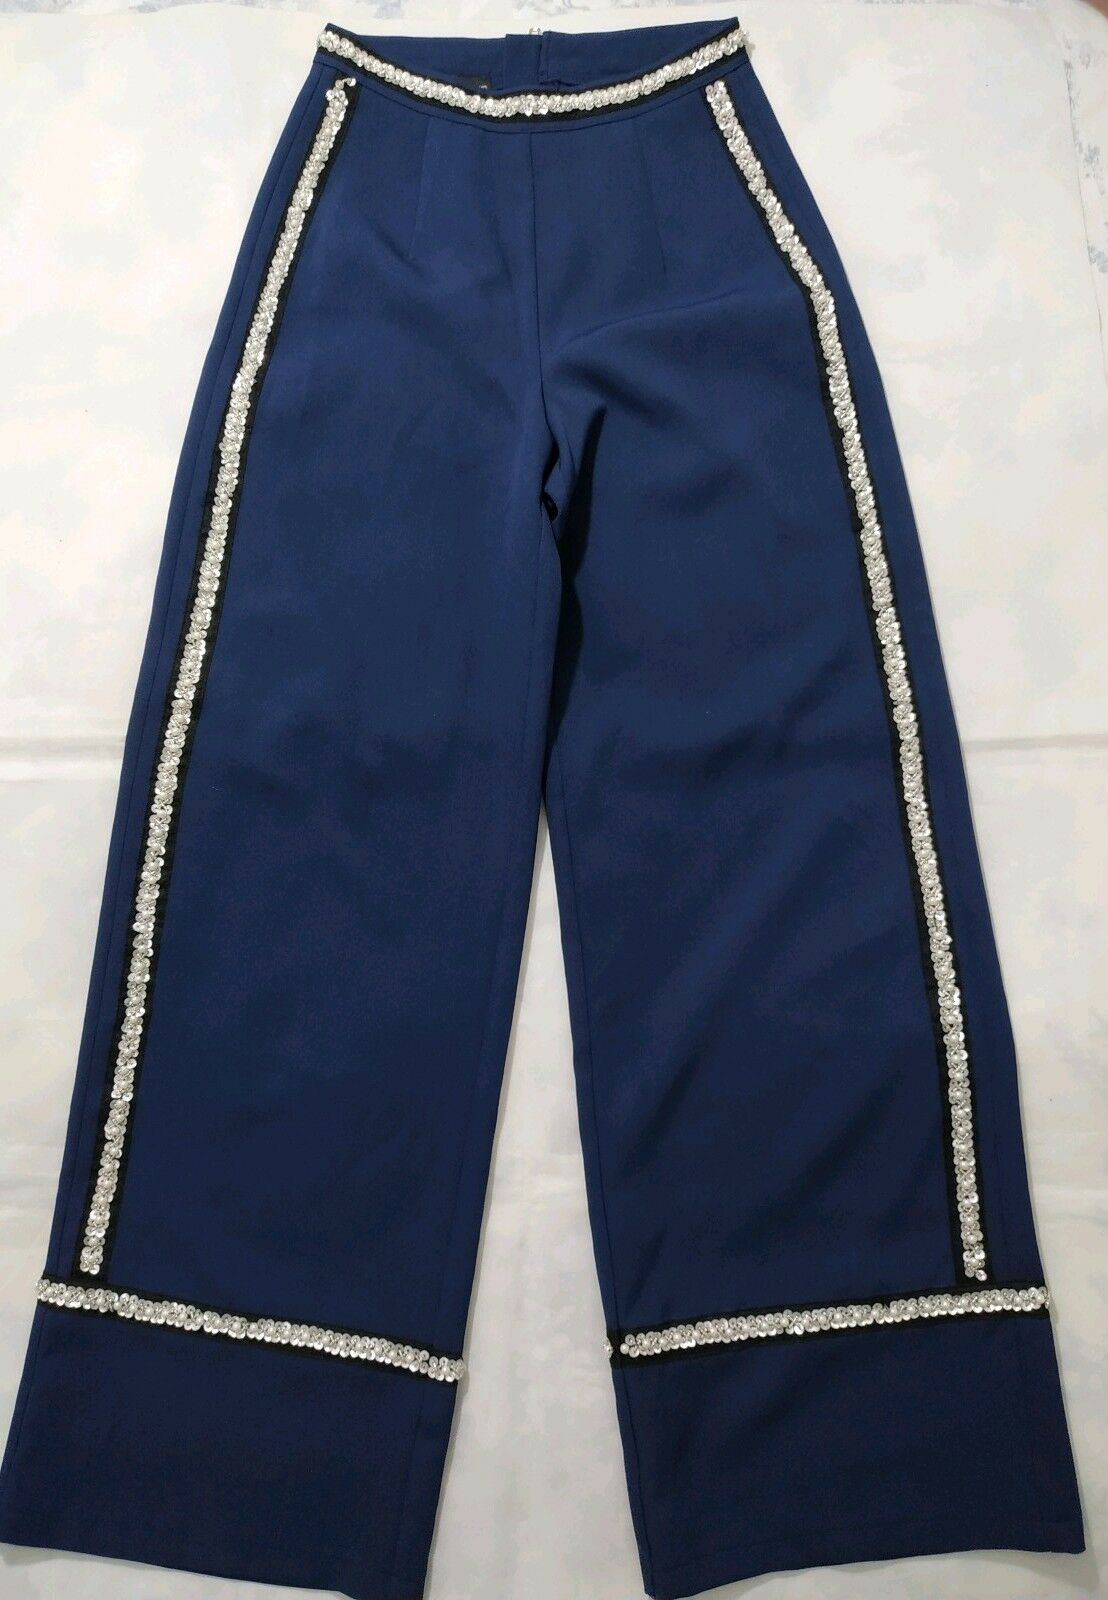 Prettylittlething Sample Ladies bluee Pearl  Palazzo Pants Trousers Size 8 NWOT